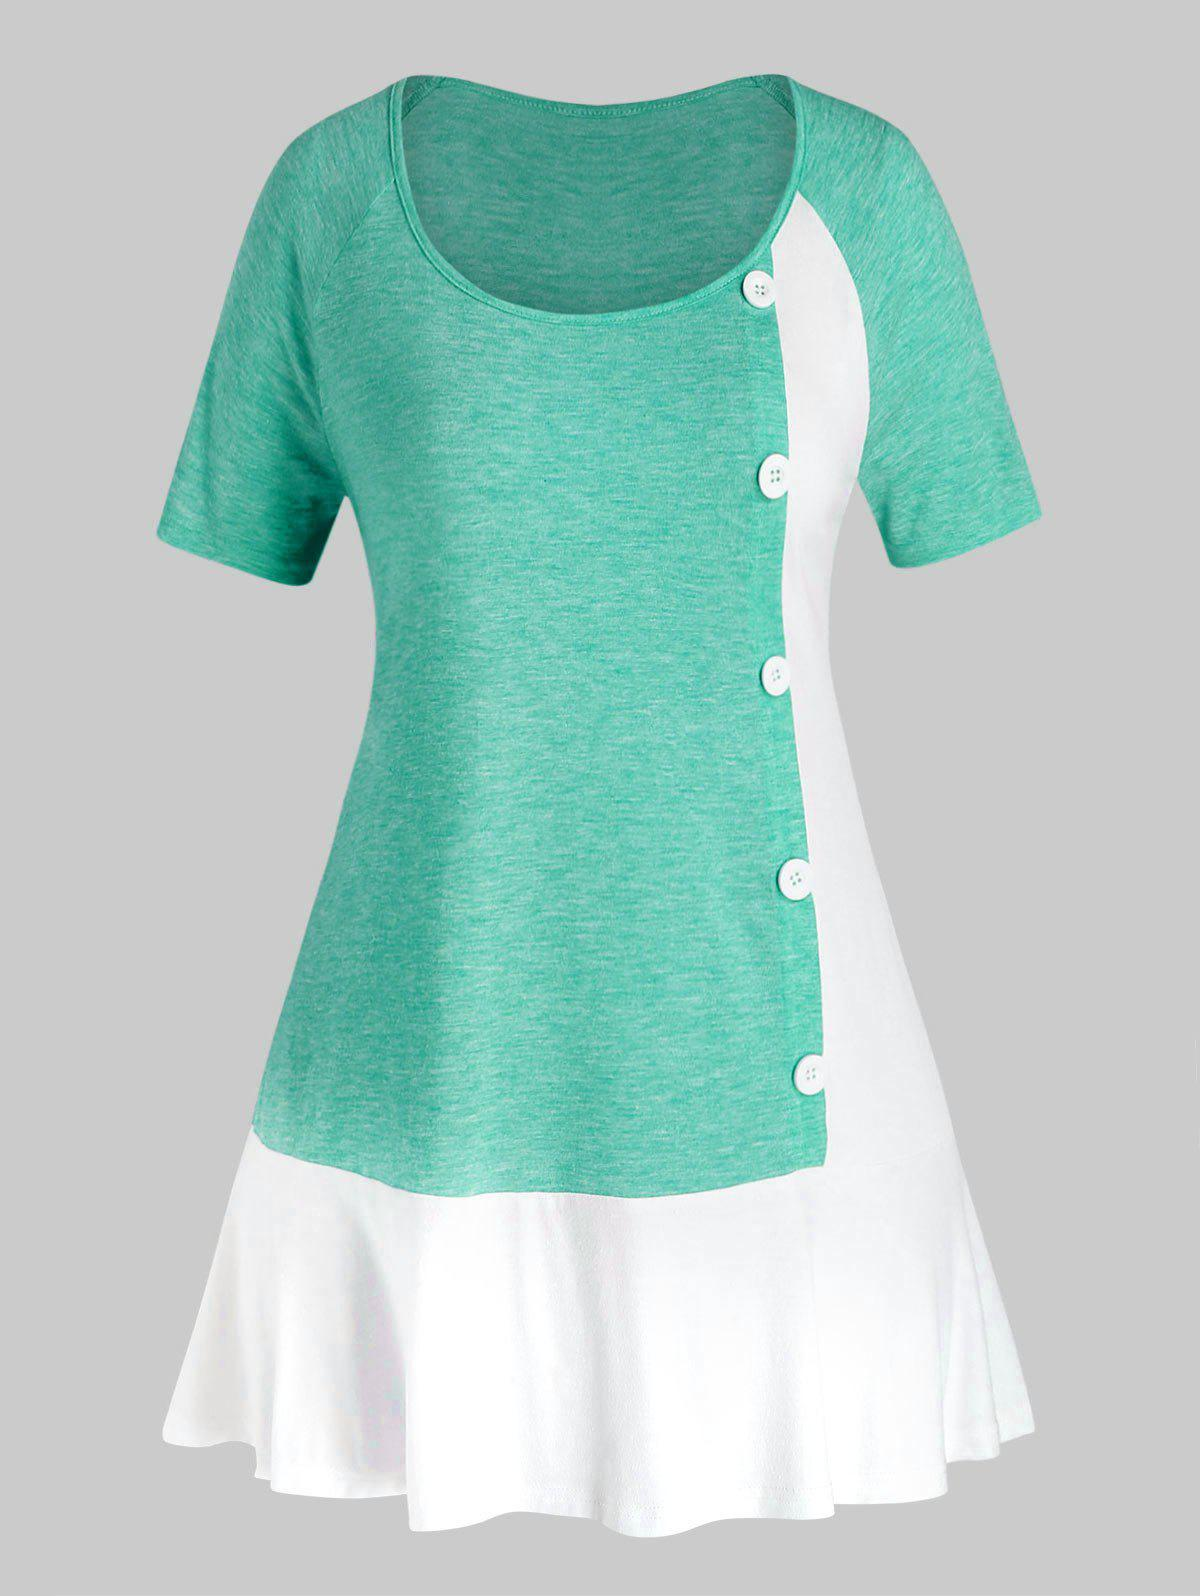 Plus Size Two Tone Mock Button T Shirt - MEDIUM TURQUOISE 5X